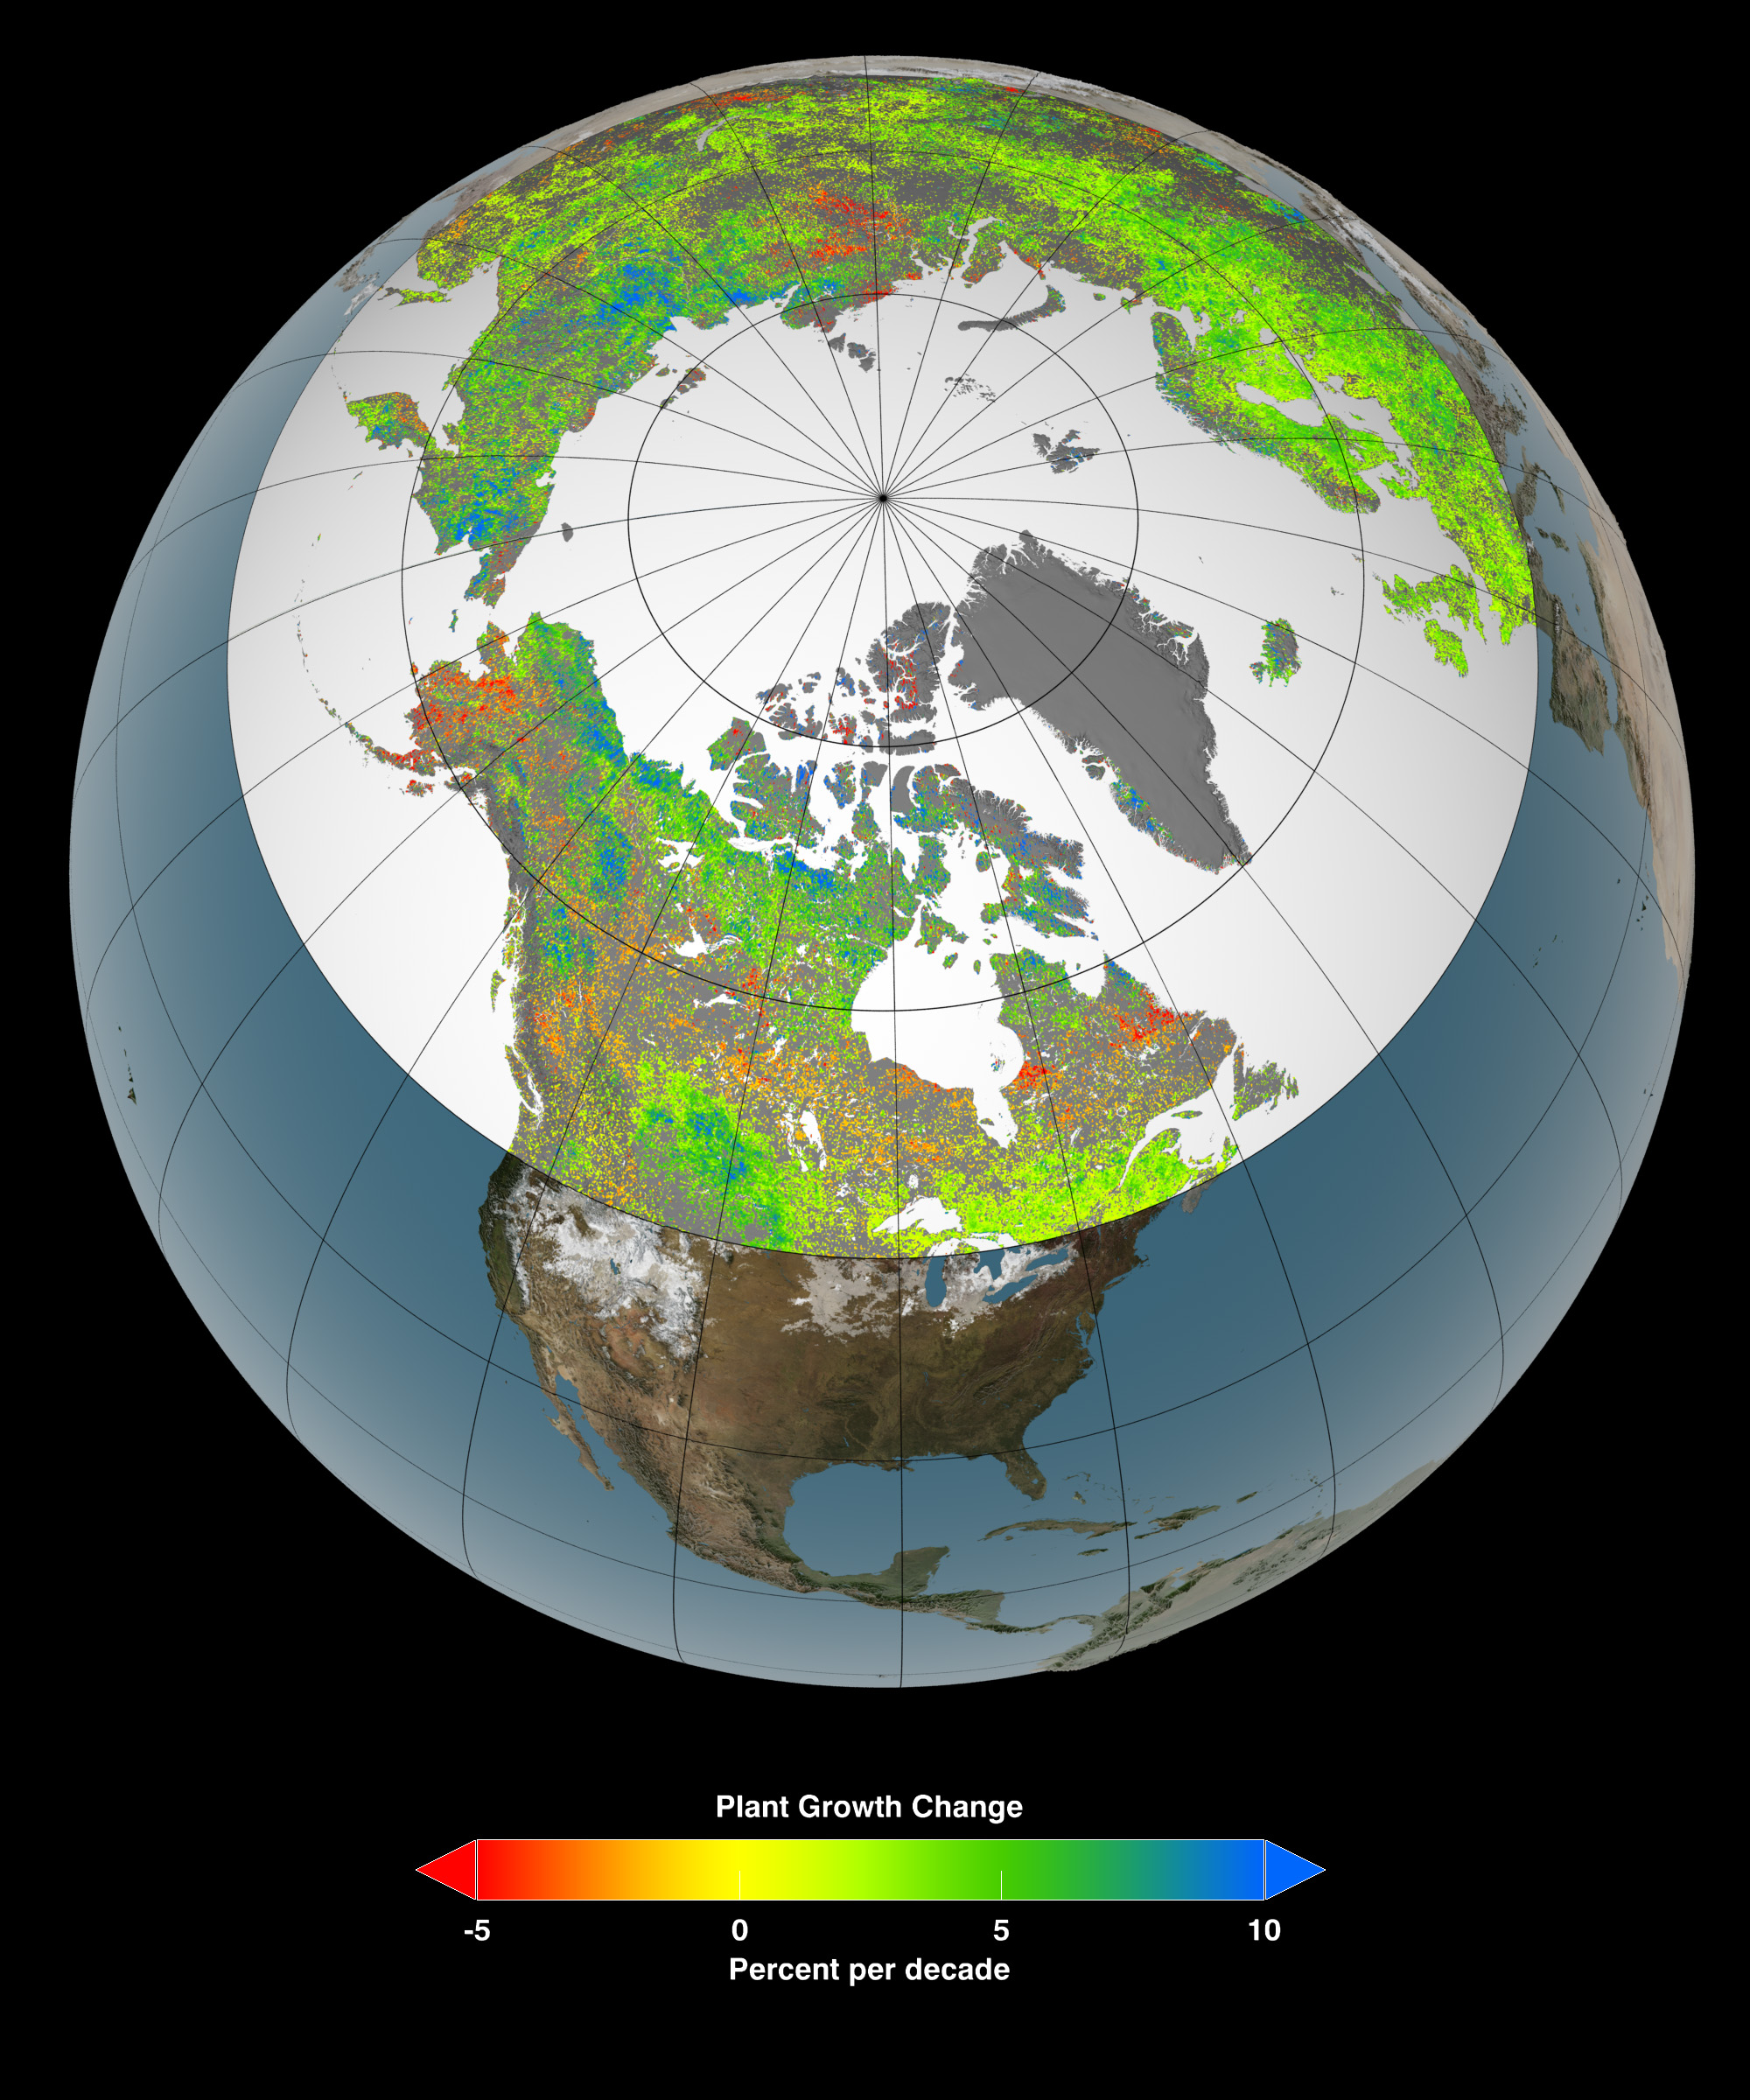 http://www.nasa.gov/images/content/733096main_Northern_ndvi_FINAL.jpg